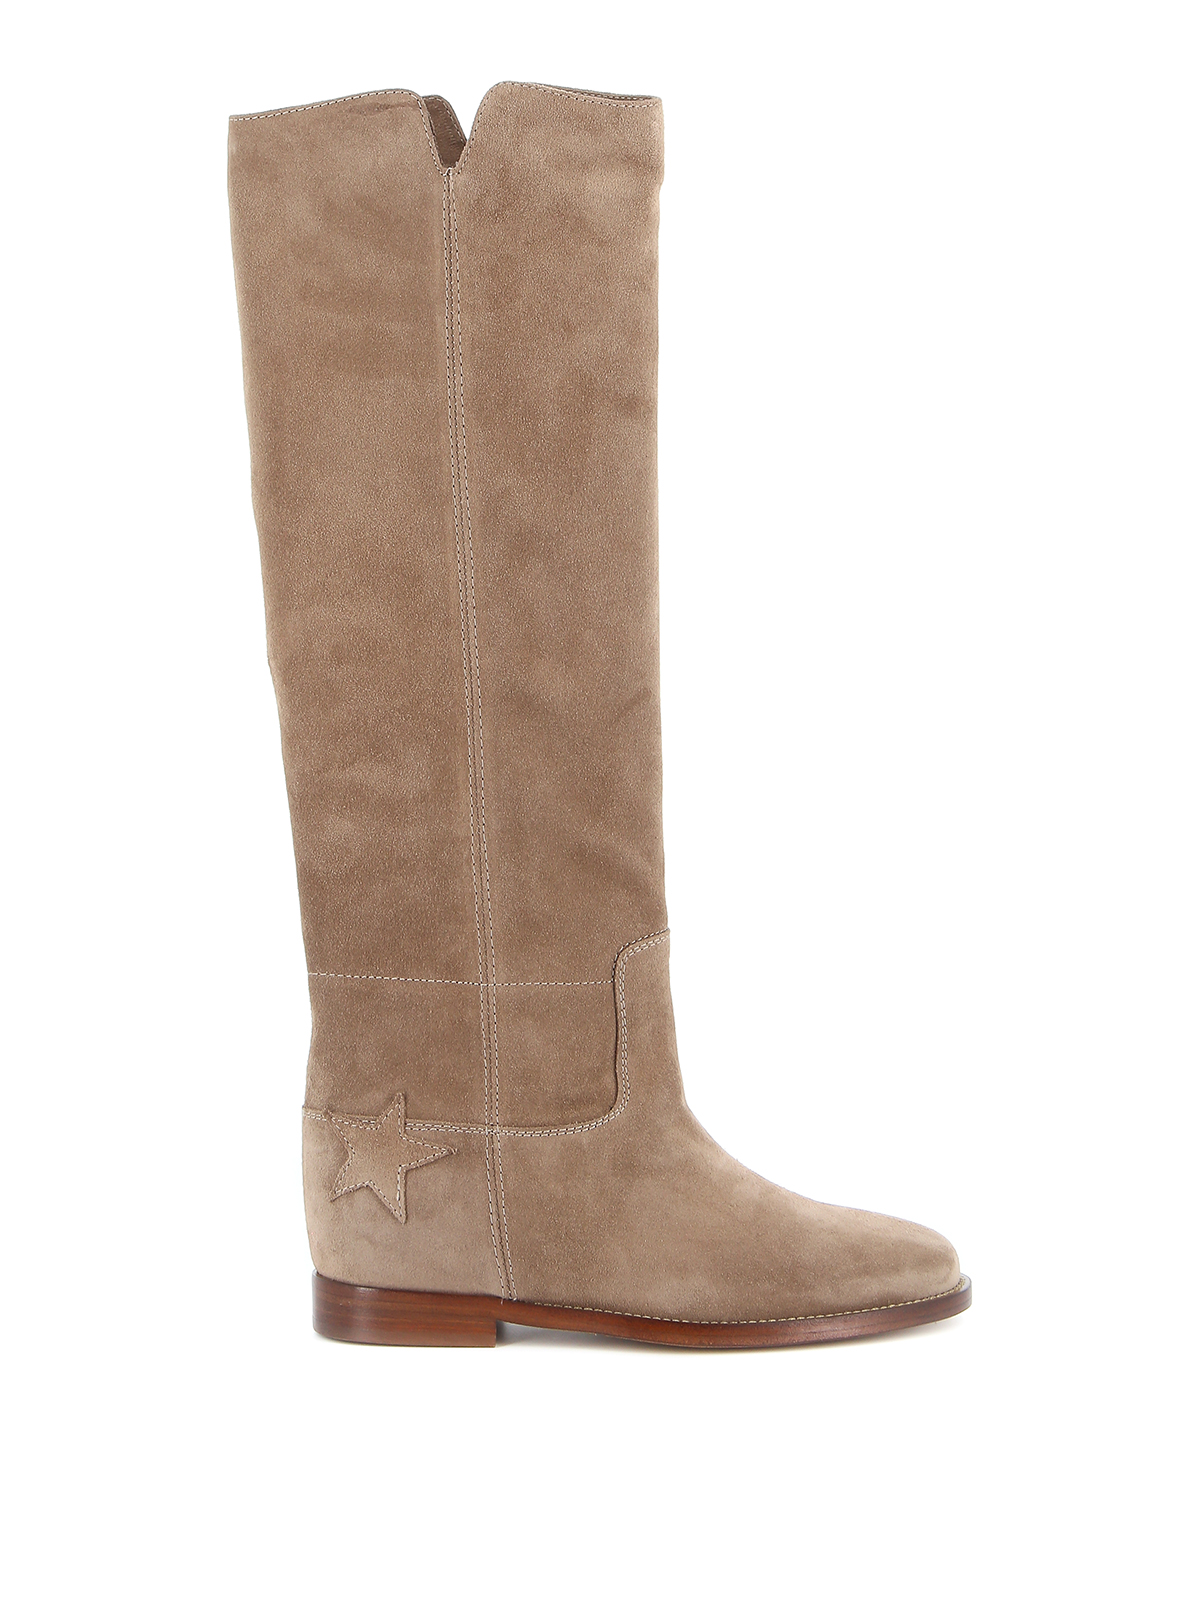 Via Roma 15 SUEDE BOOTS WITH STAR PATCH